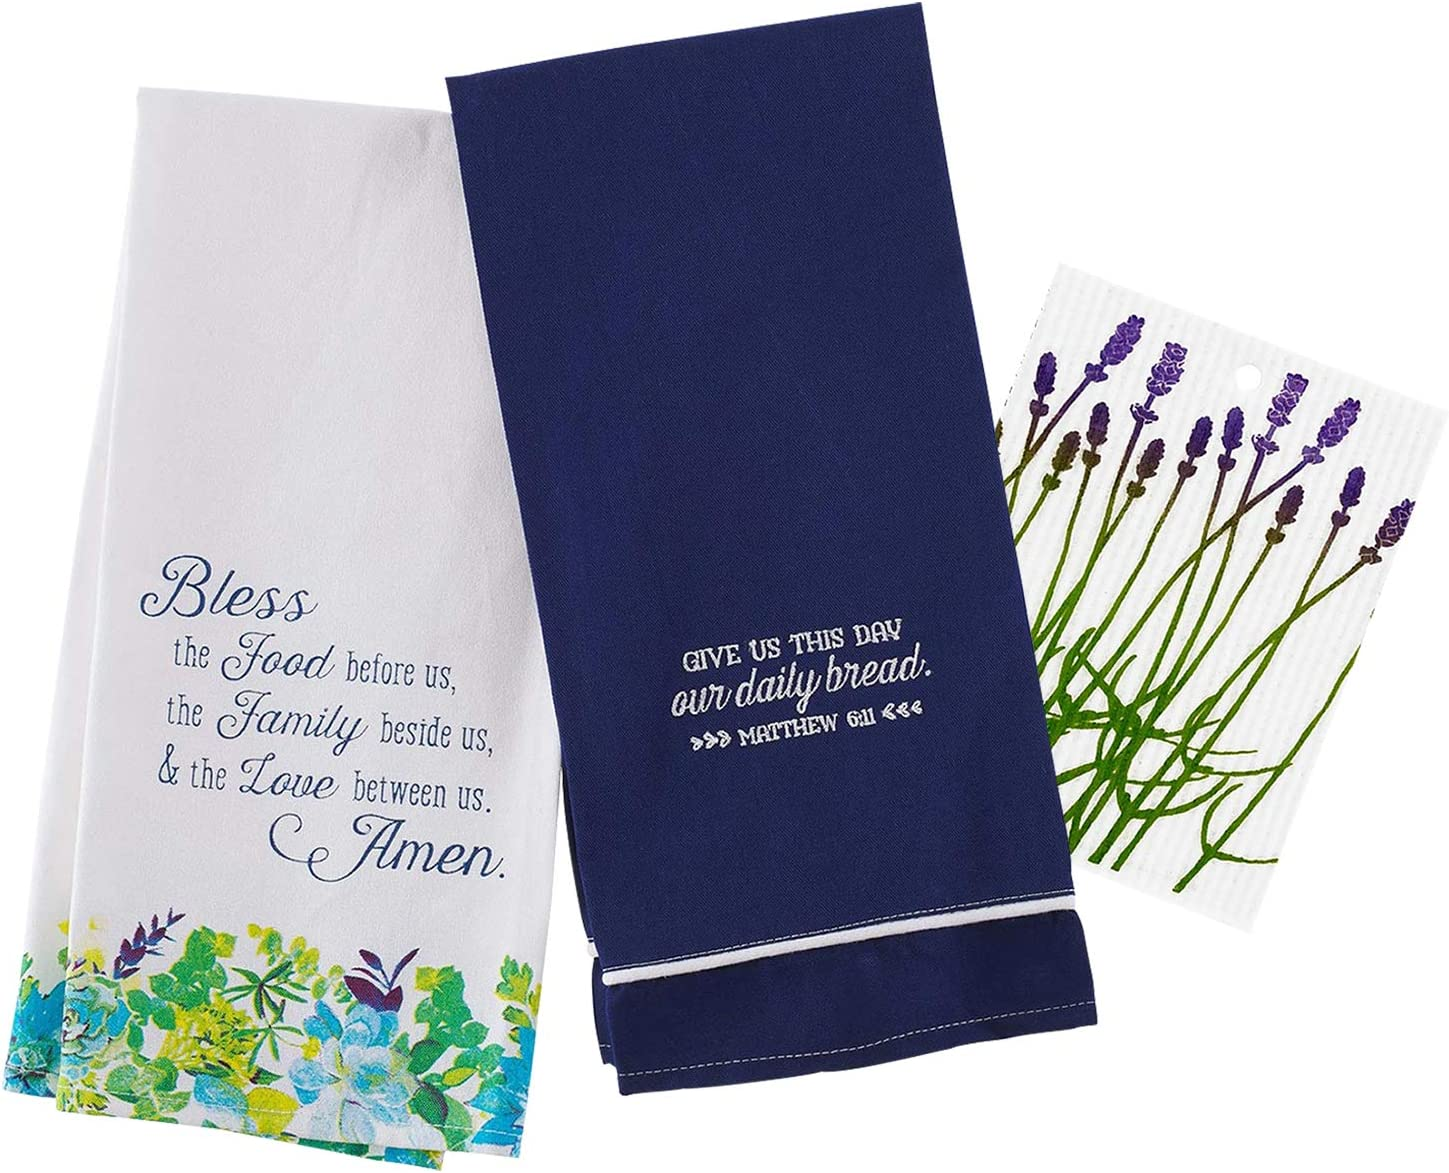 Inspirational Kitchen Dish Towels with Quotes | Bless The Food, Our Daily Bread Sayings Theme | Decorative Cotton Tea Towel Set for Dishes and Hand Drying | Includes Swedish Dishcloth, Total 3 Items